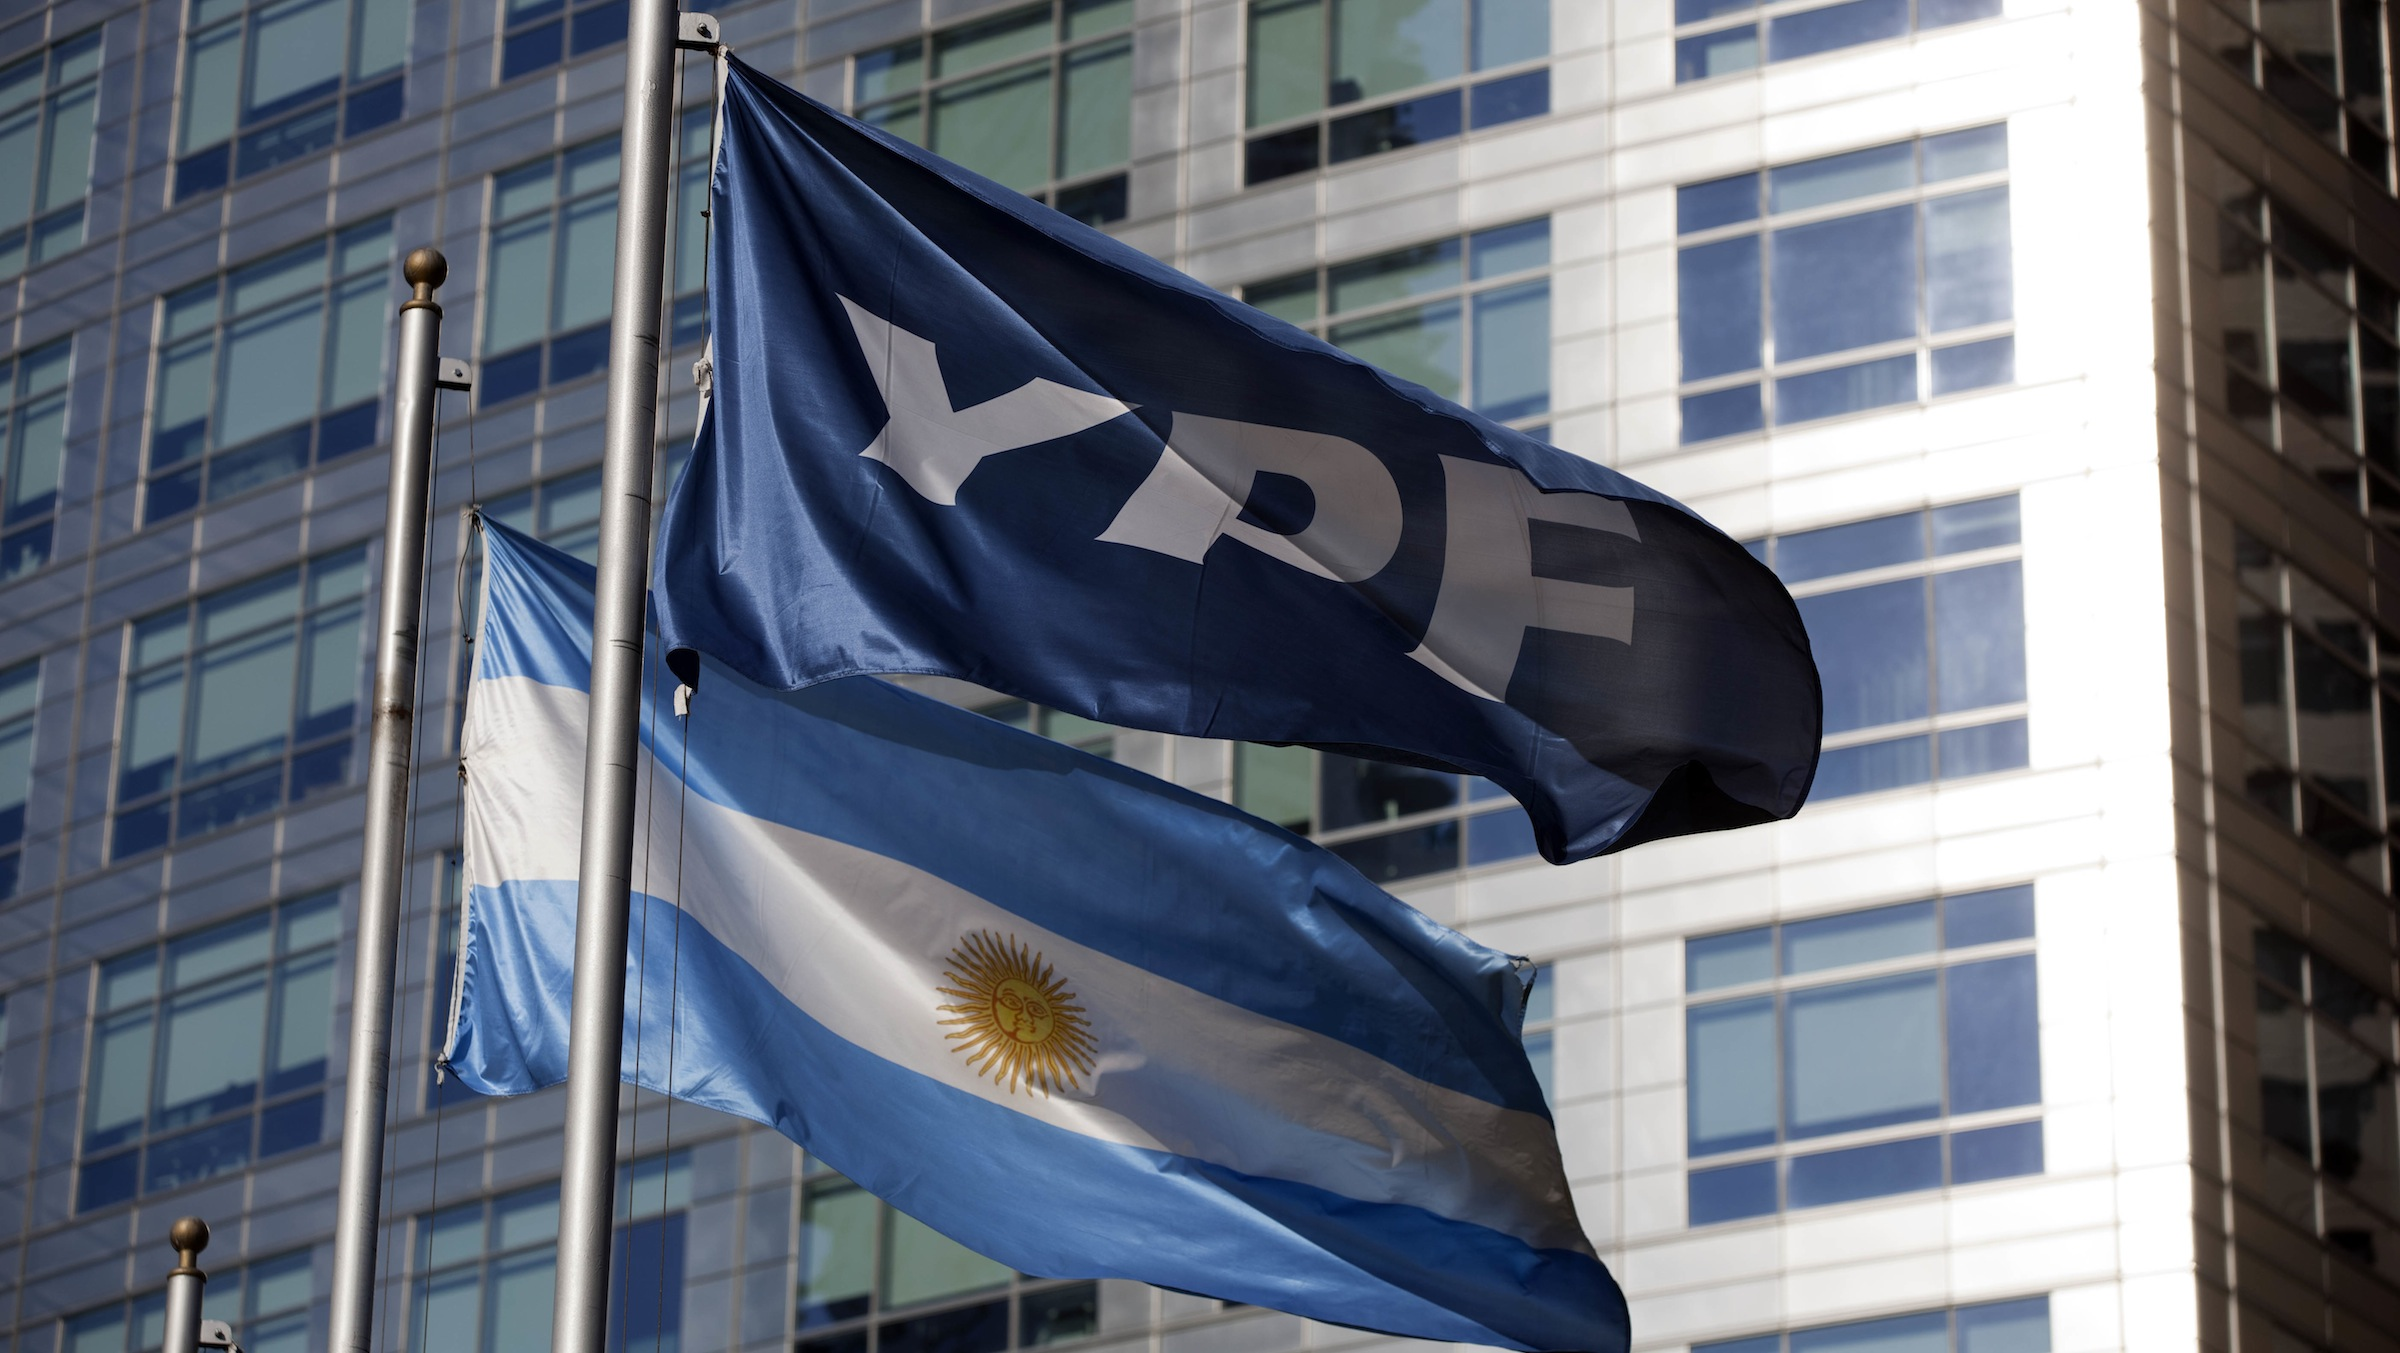 An Argentine flag, bottom, and a flag of the YPF oil company flutter in front of the YPF headquarters in Buenos Aires, Argentina, Monday, April 16, 2012. Argentine President Cristina Fernandez on Monday proposed a bill to expropriate 51 percent of the shares of YPF oil company that is controlled by Spain's Repsol, moving ahead with the plan despite fierce opposition from Madrid. (AP Photo/Natacha Pisarenko)